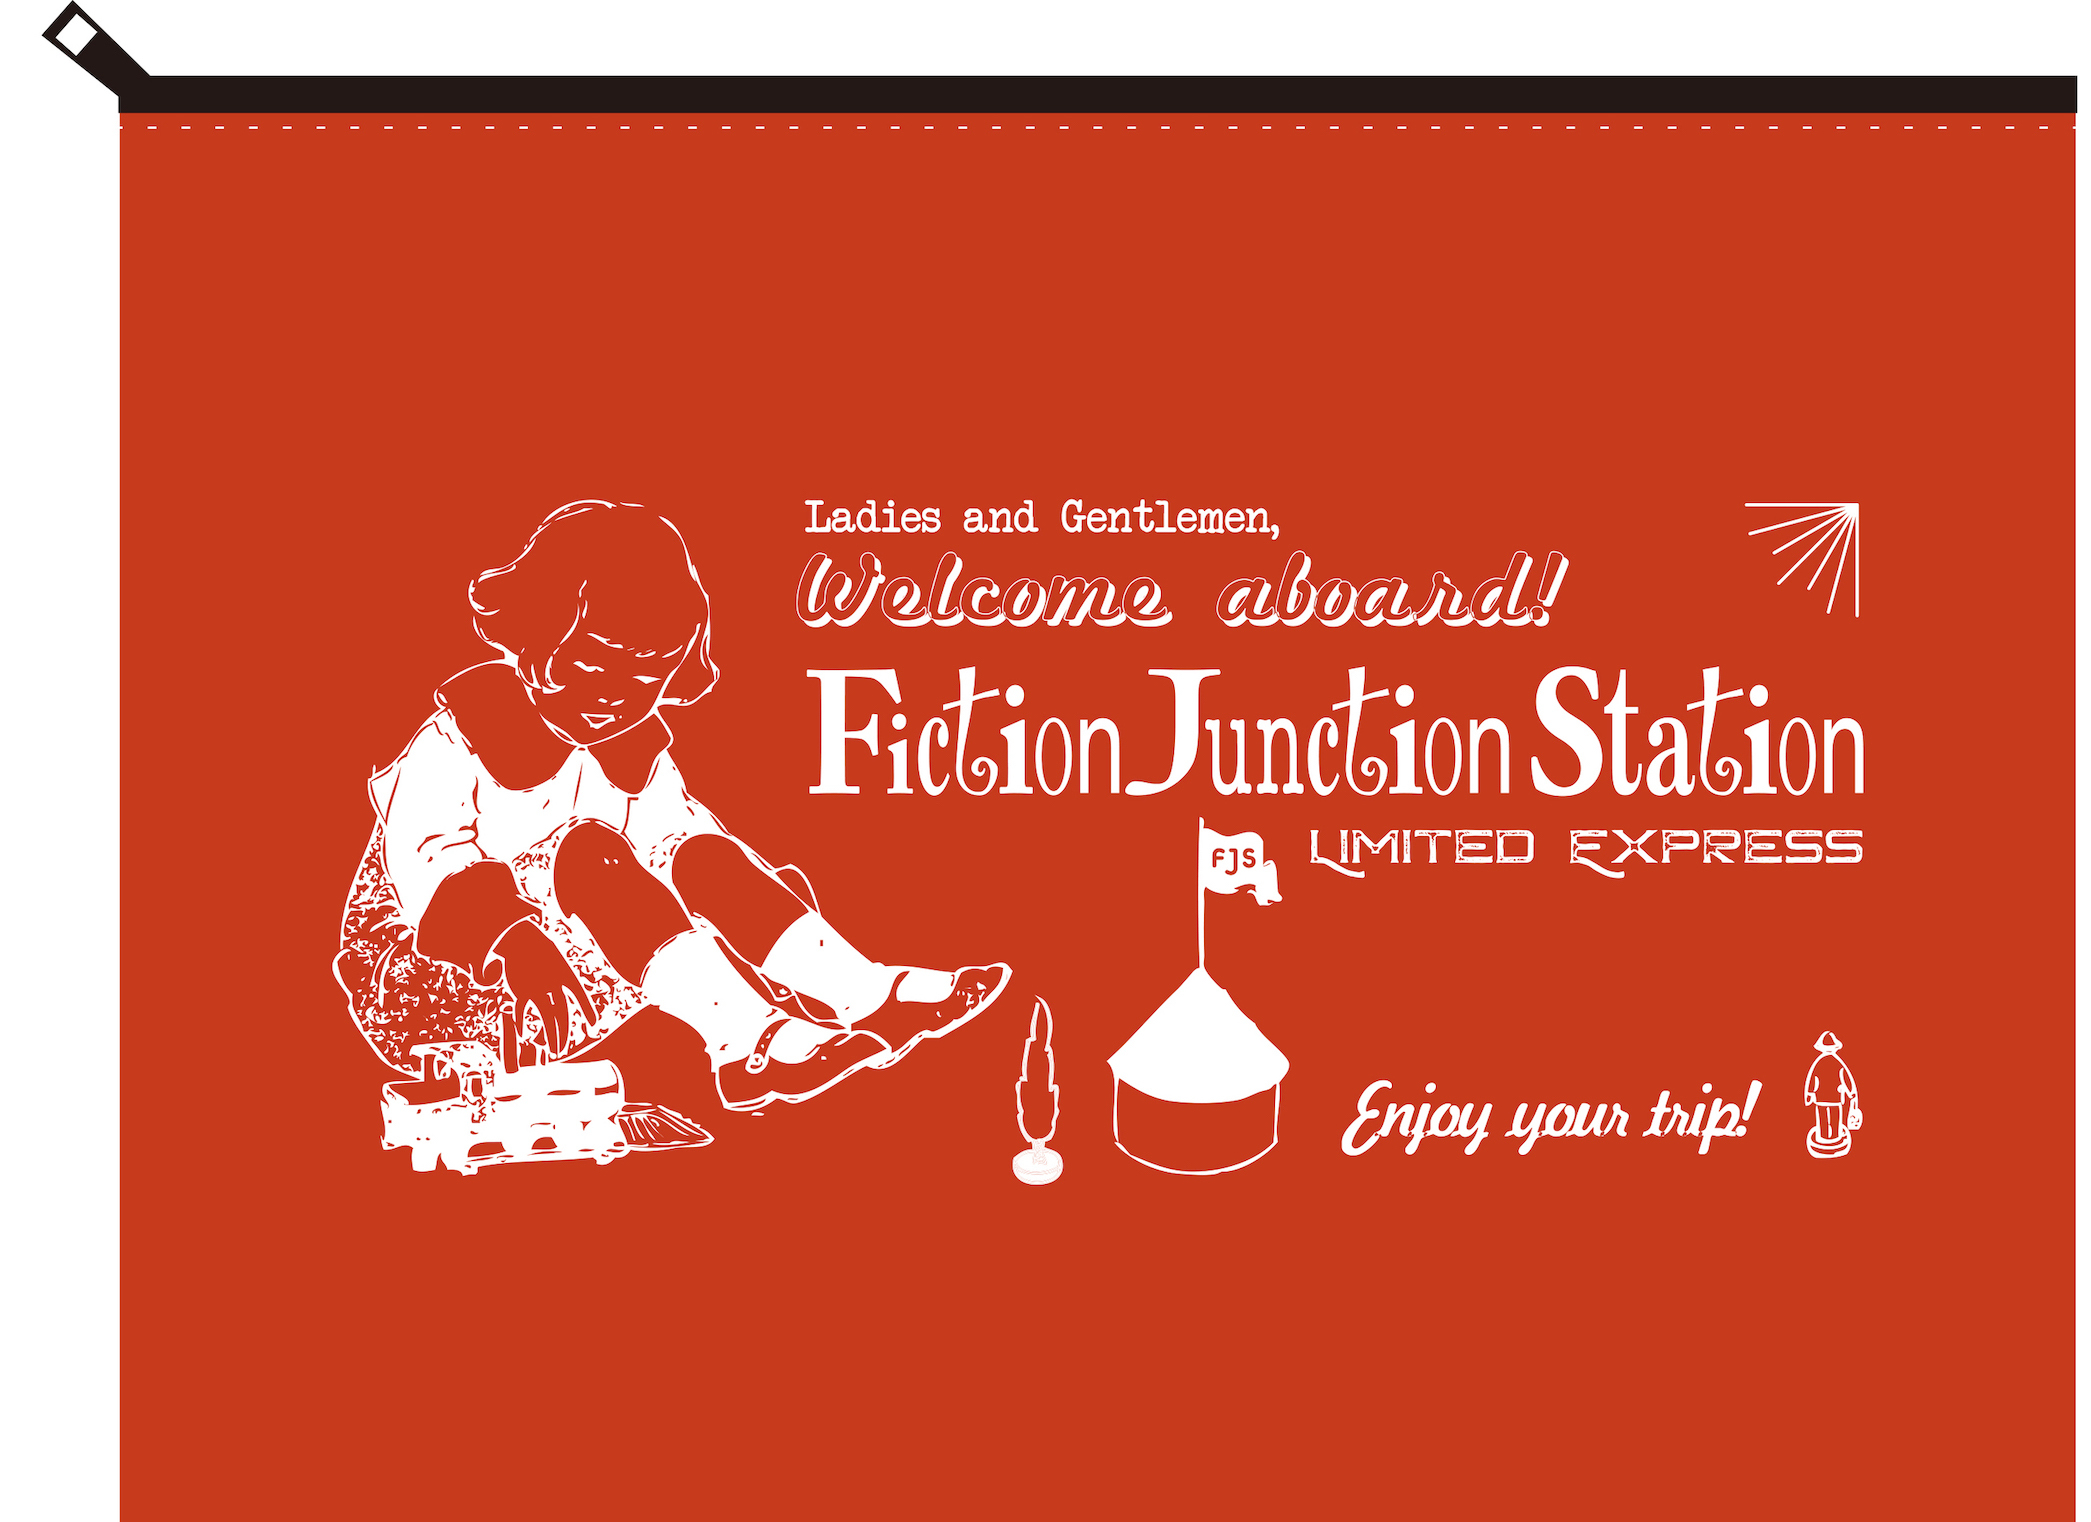 『FictionJunction Station Fan Club Talk Event vol.#1』ポーチ Large